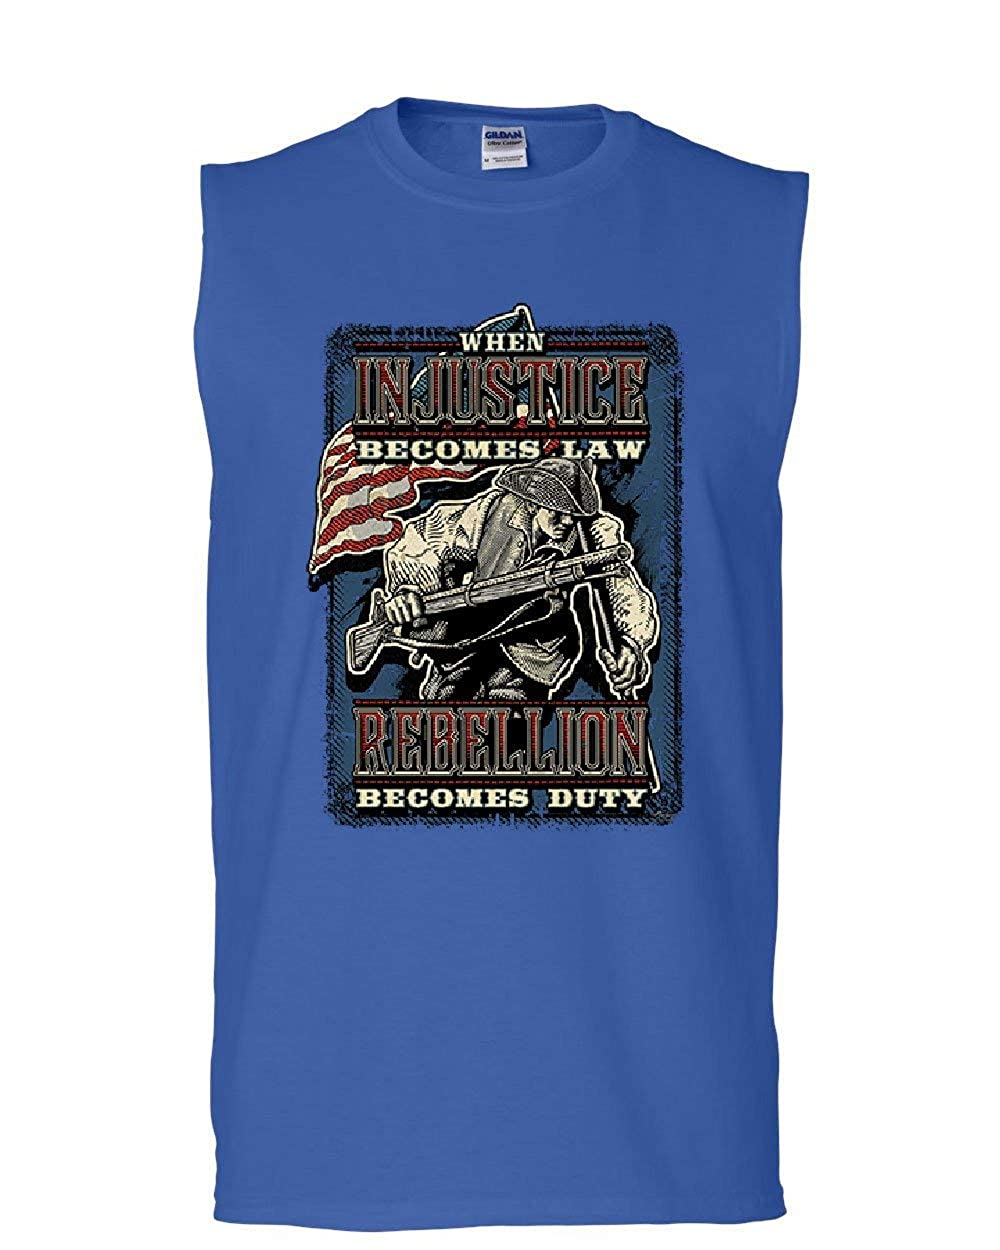 Tee Hunt Injustice Becomes Law Rebellion Becomes Duty Muscle Shirt Militia 2A Sleeveless